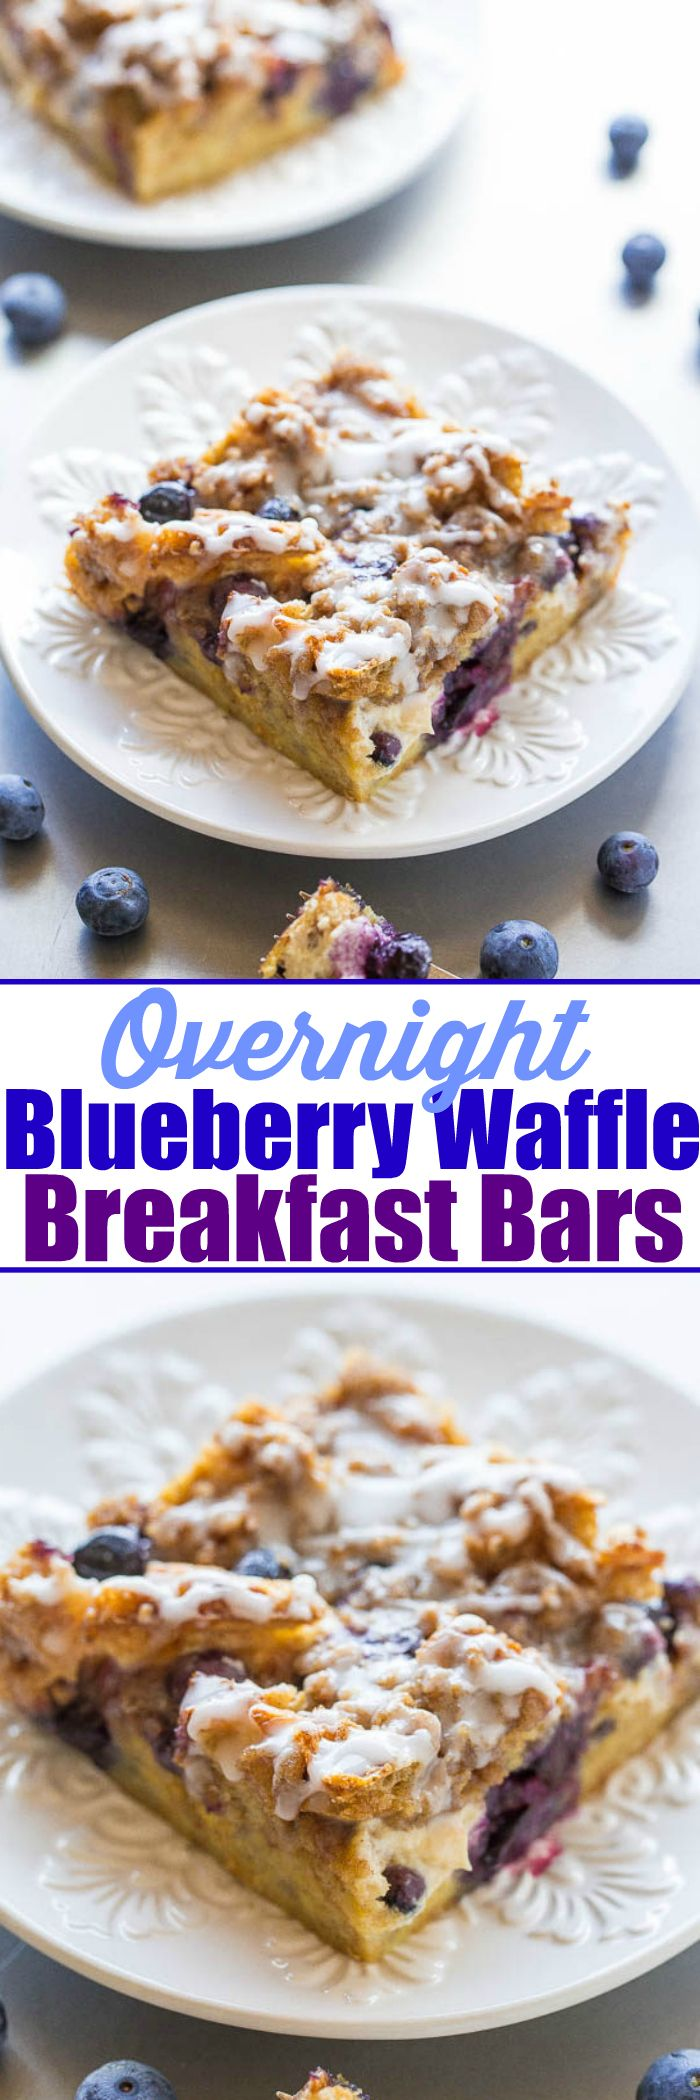 Overnight Blueberry Waffle Breakfast Bars - Blueberry waffles layered with cream cheese, blueberries, streusel, a glaze, and more for one of the BEST breakfasts ever!! It's dessert for breakfast! Assemble it the night before for a mindlessly easy and AMAZING breakfast or holiday brunch!!